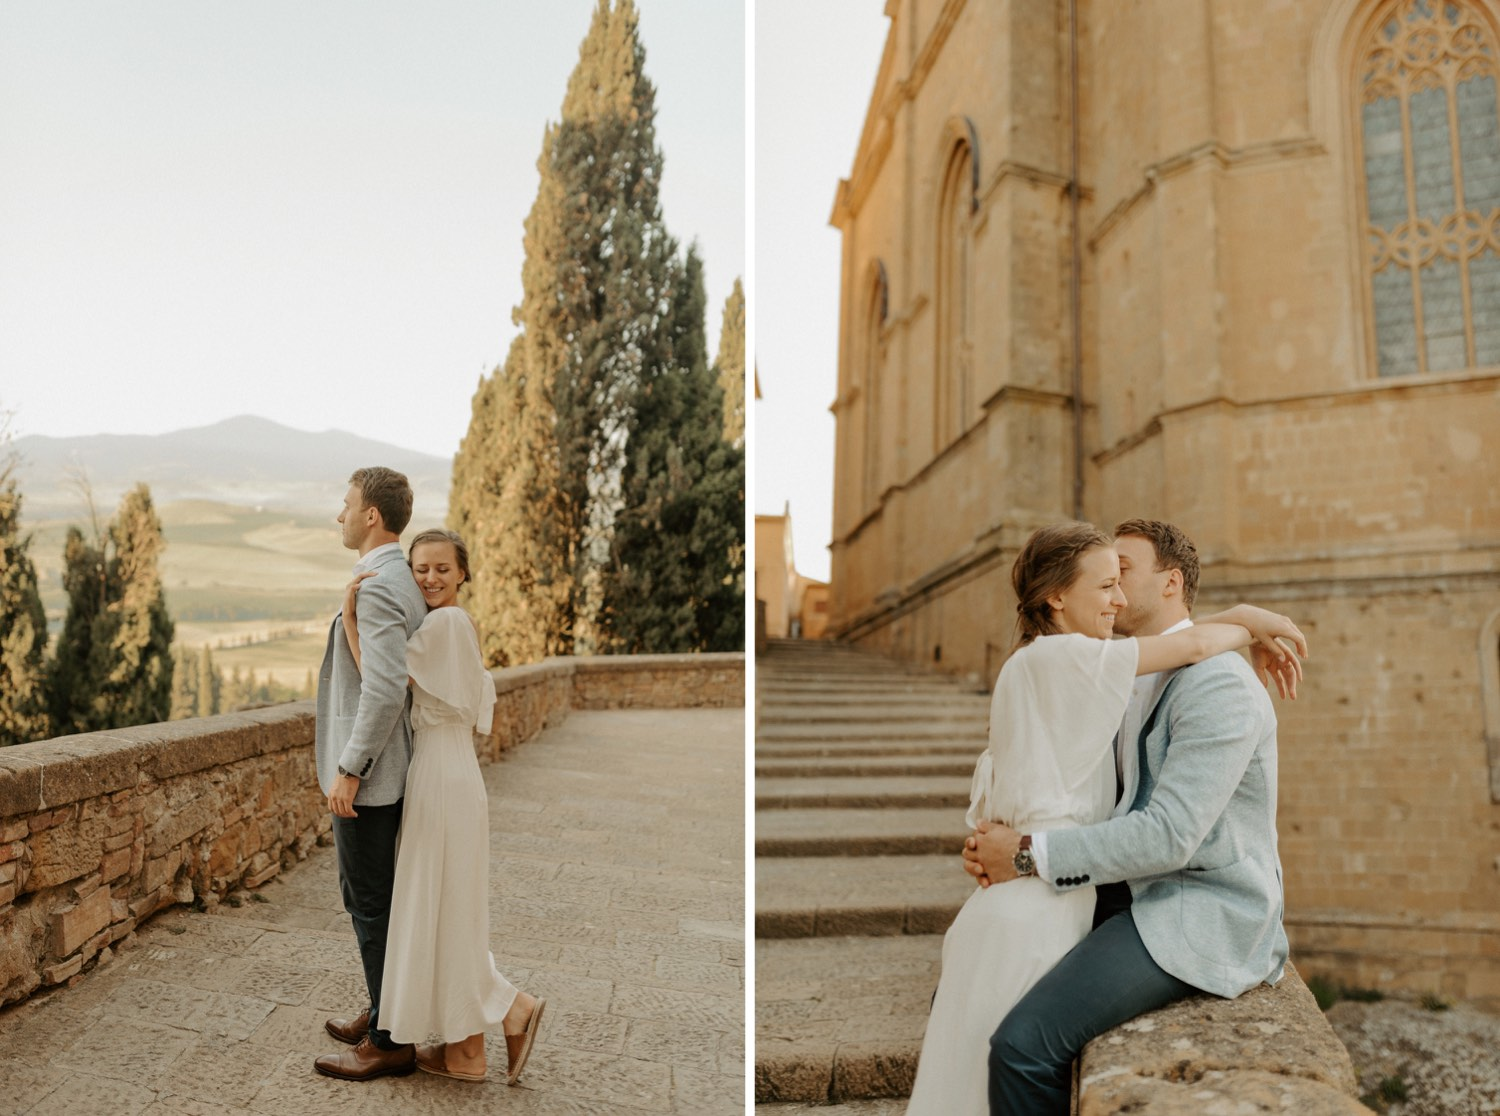 39_ali-dirk-pre-wedding-161_ali-dirk-pre-wedding-150_tuscany_pienza_wedding_italy_photography.jpg